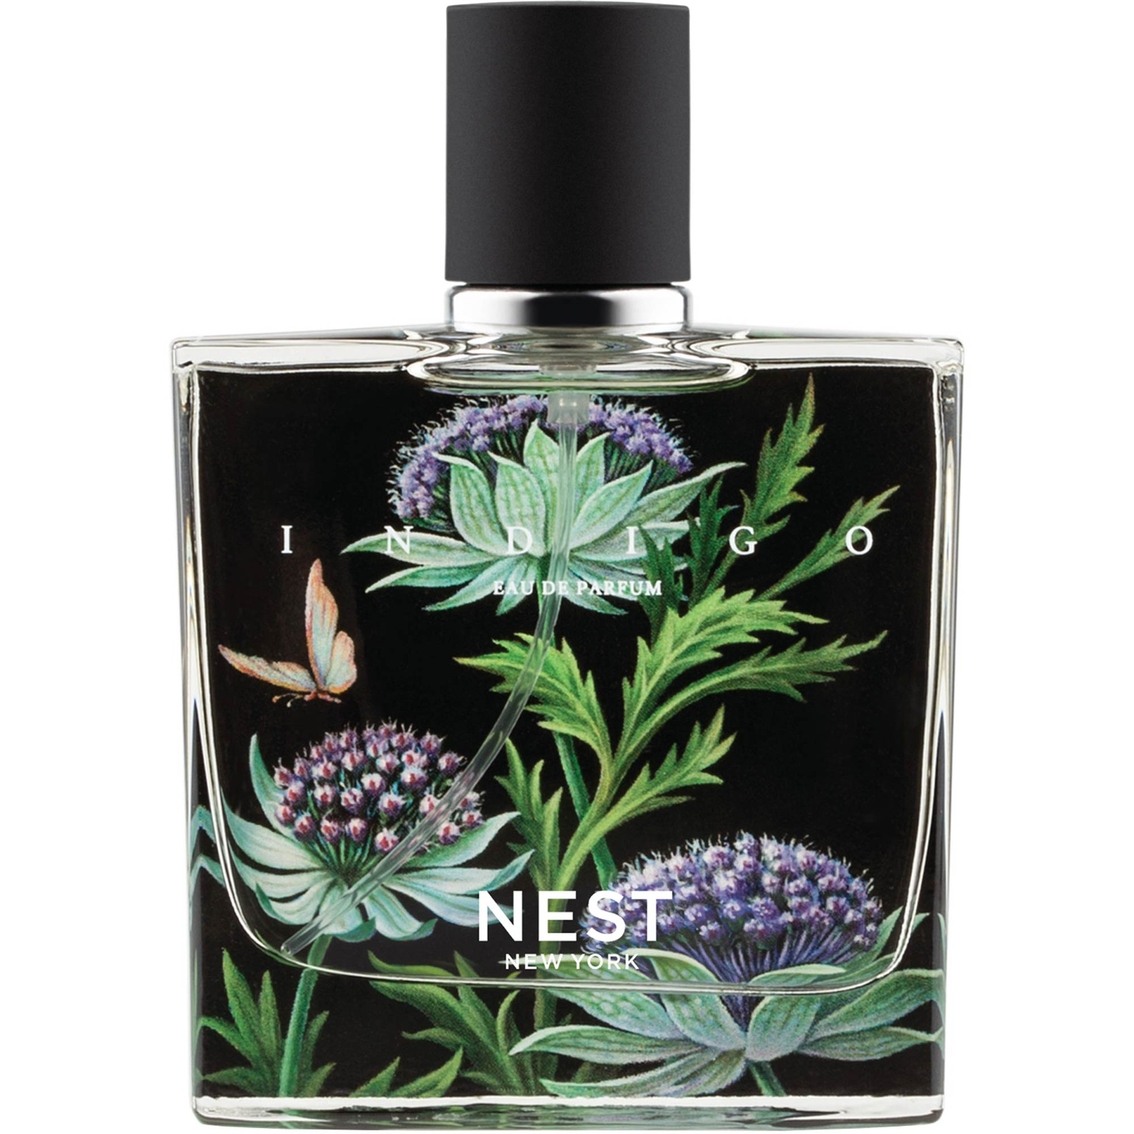 Nest fragrances indigo eau de parfum womens fragrances beauty nest fragrances indigo eau de parfum izmirmasajfo